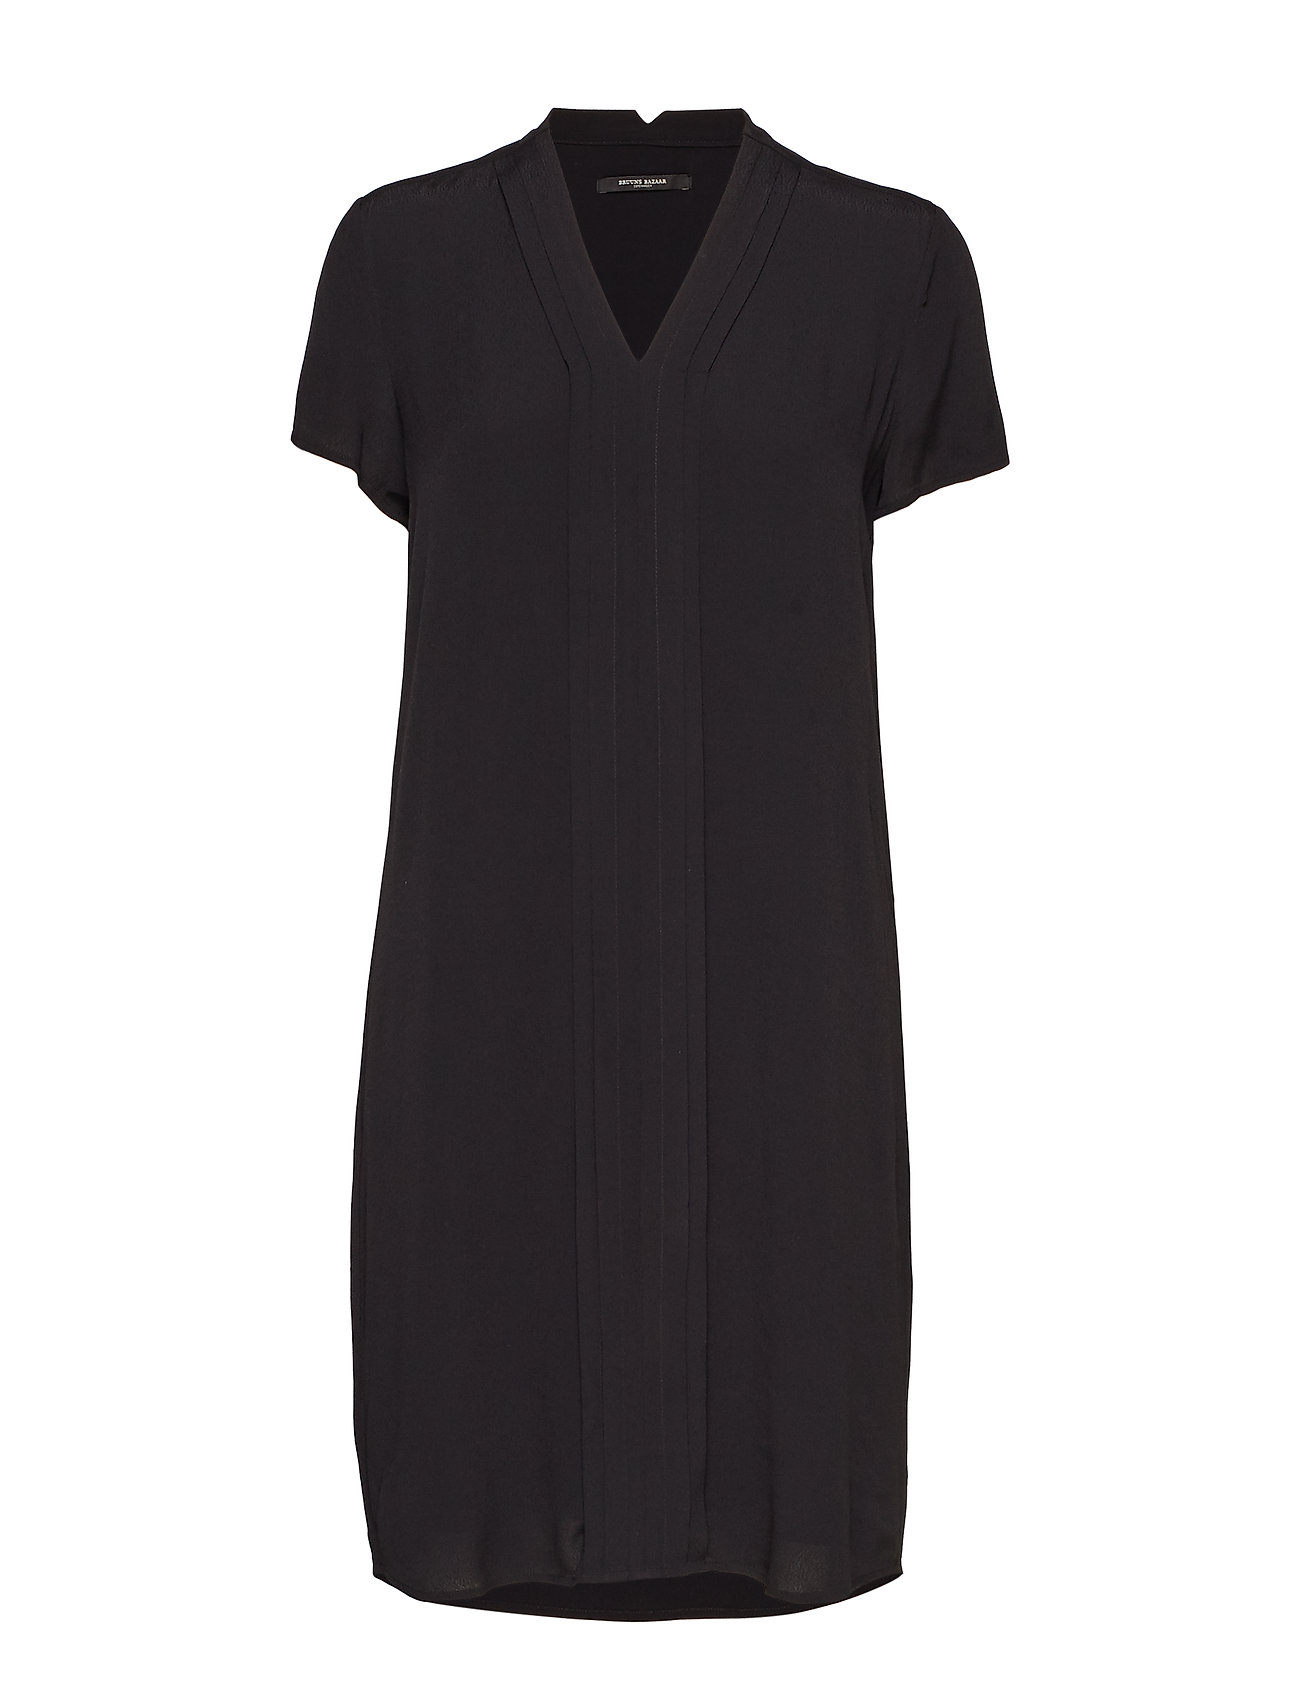 Bruuns Bazaar Lilli Kenry Dress - BLACK